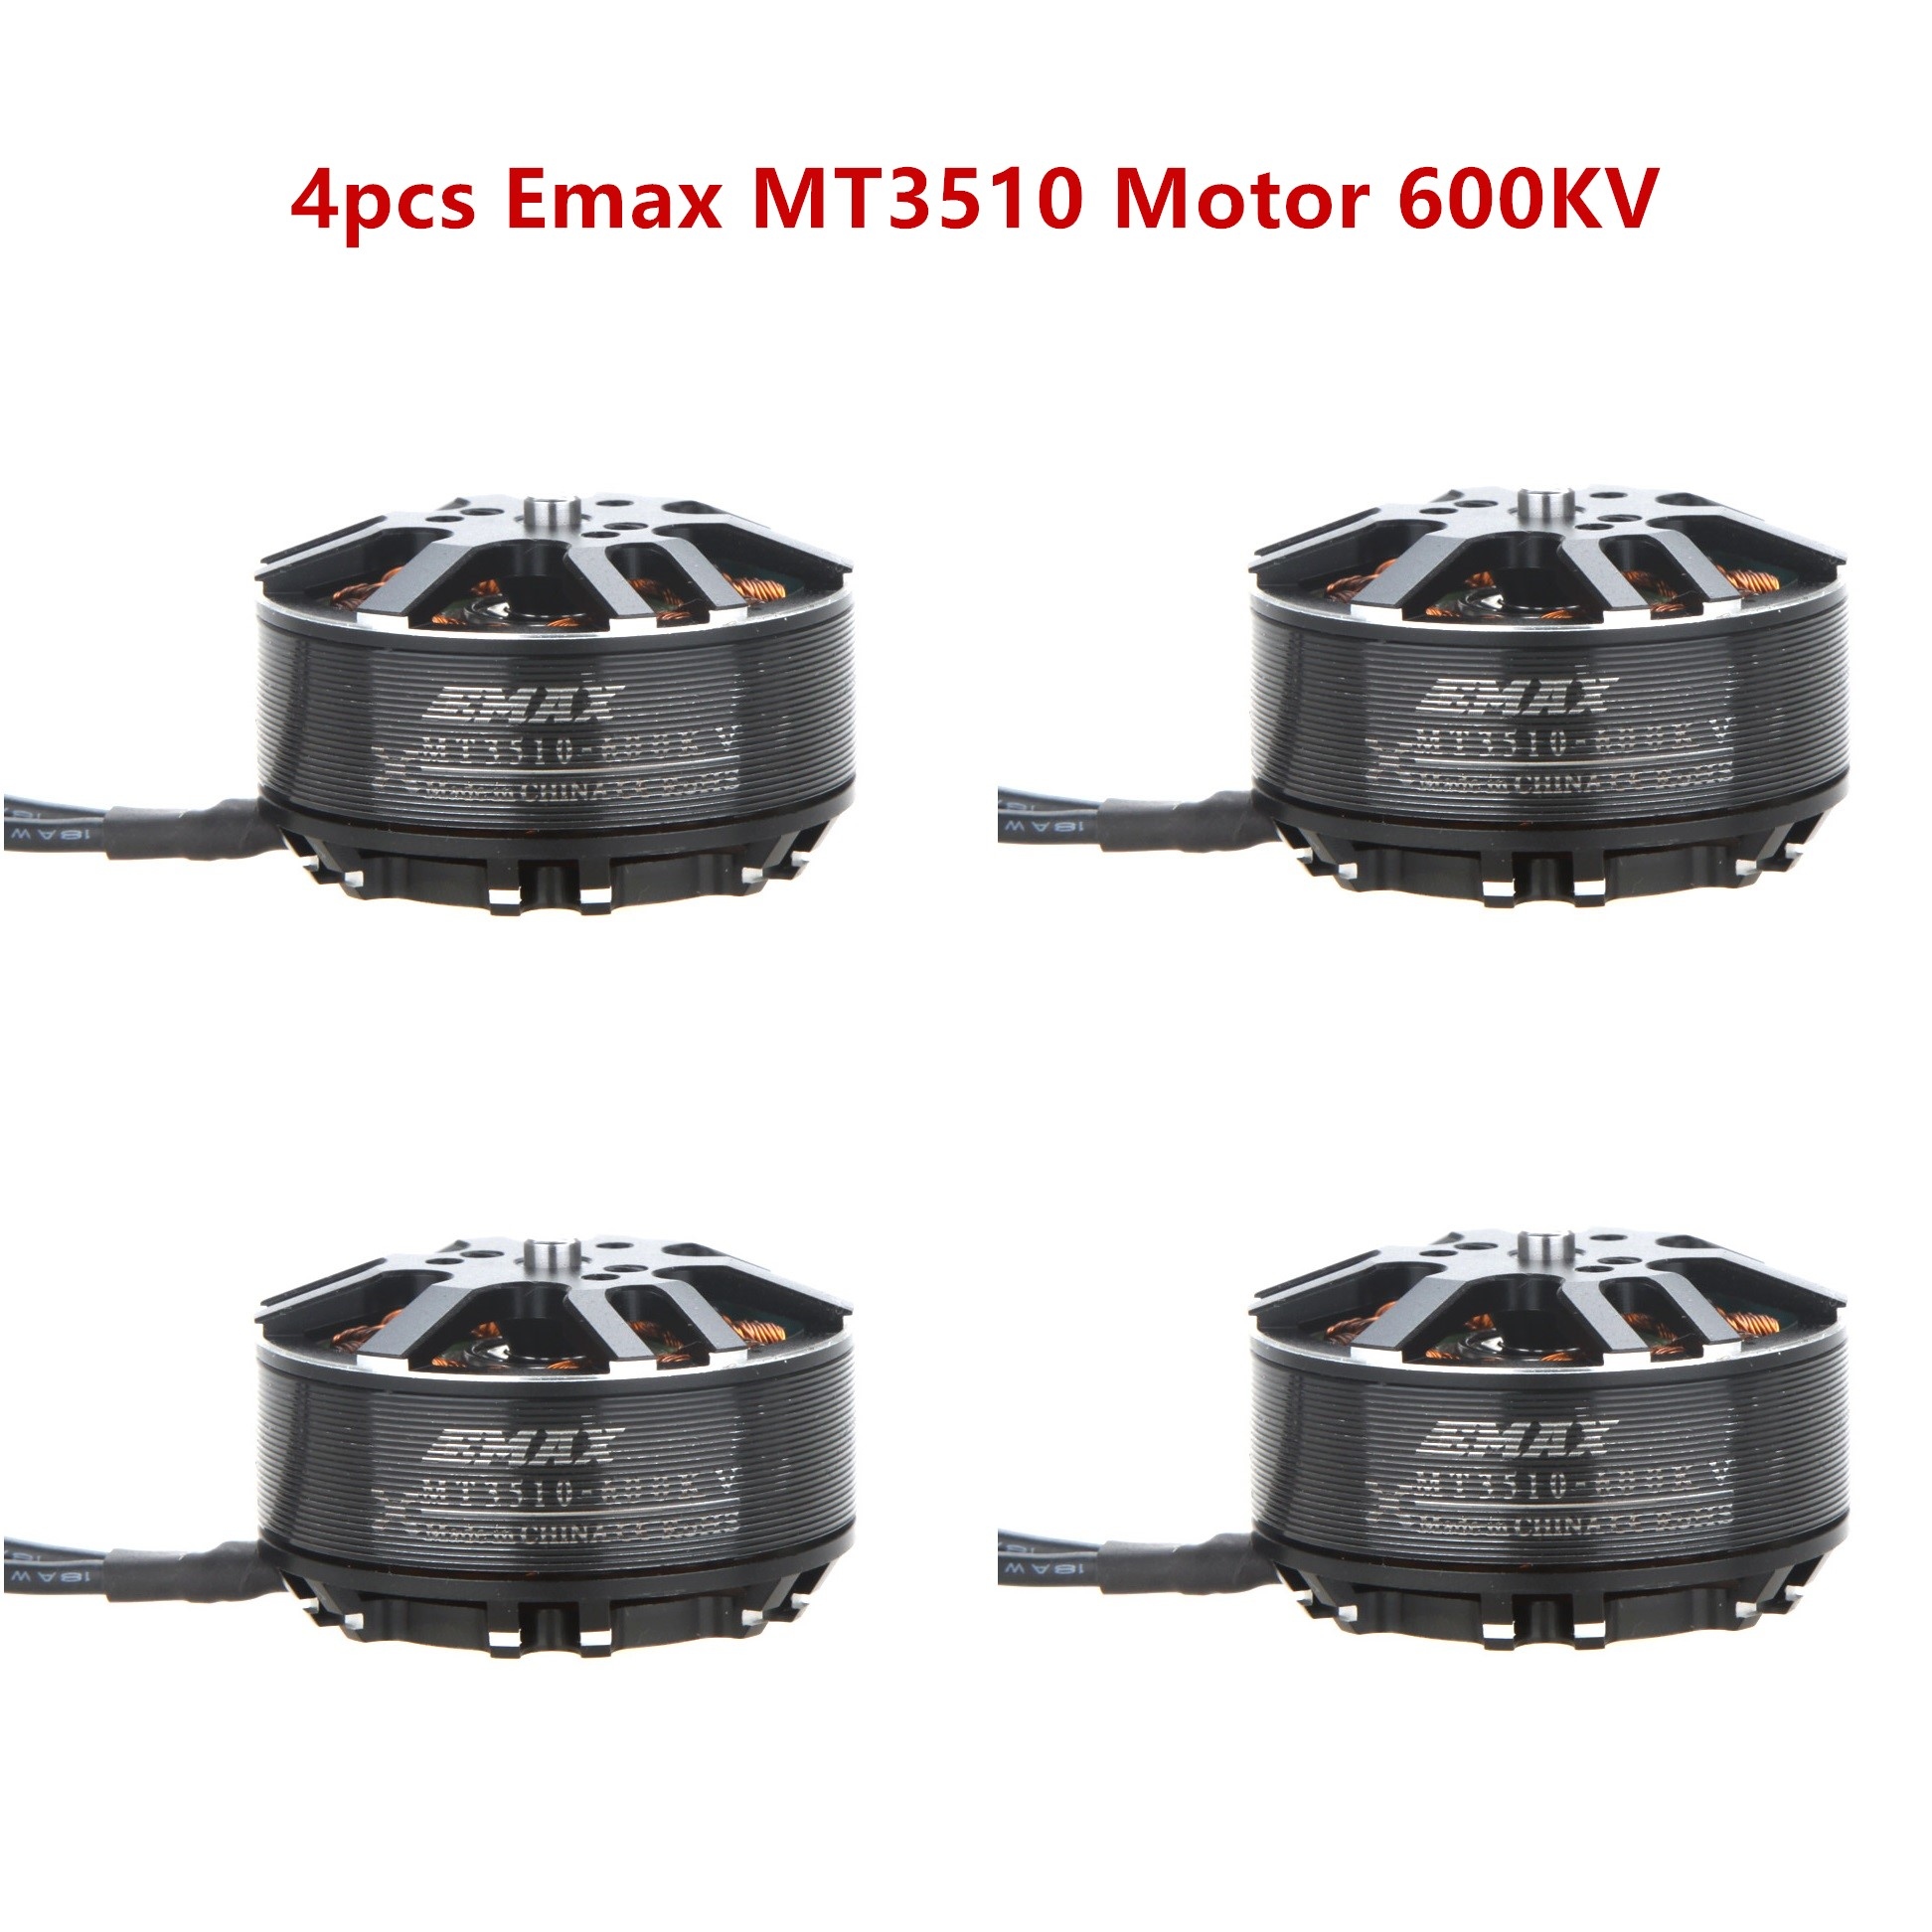 4PCS EMAX Brushless Motor MT3510 600KV KV600 Plus Thread Motor for RC FPV Multicopter Quadcopter Part 4set lot original emax brushless motor mt3110 700kv kv480 plus thread motor cw ccw for rc fpv multicopter quadcopter